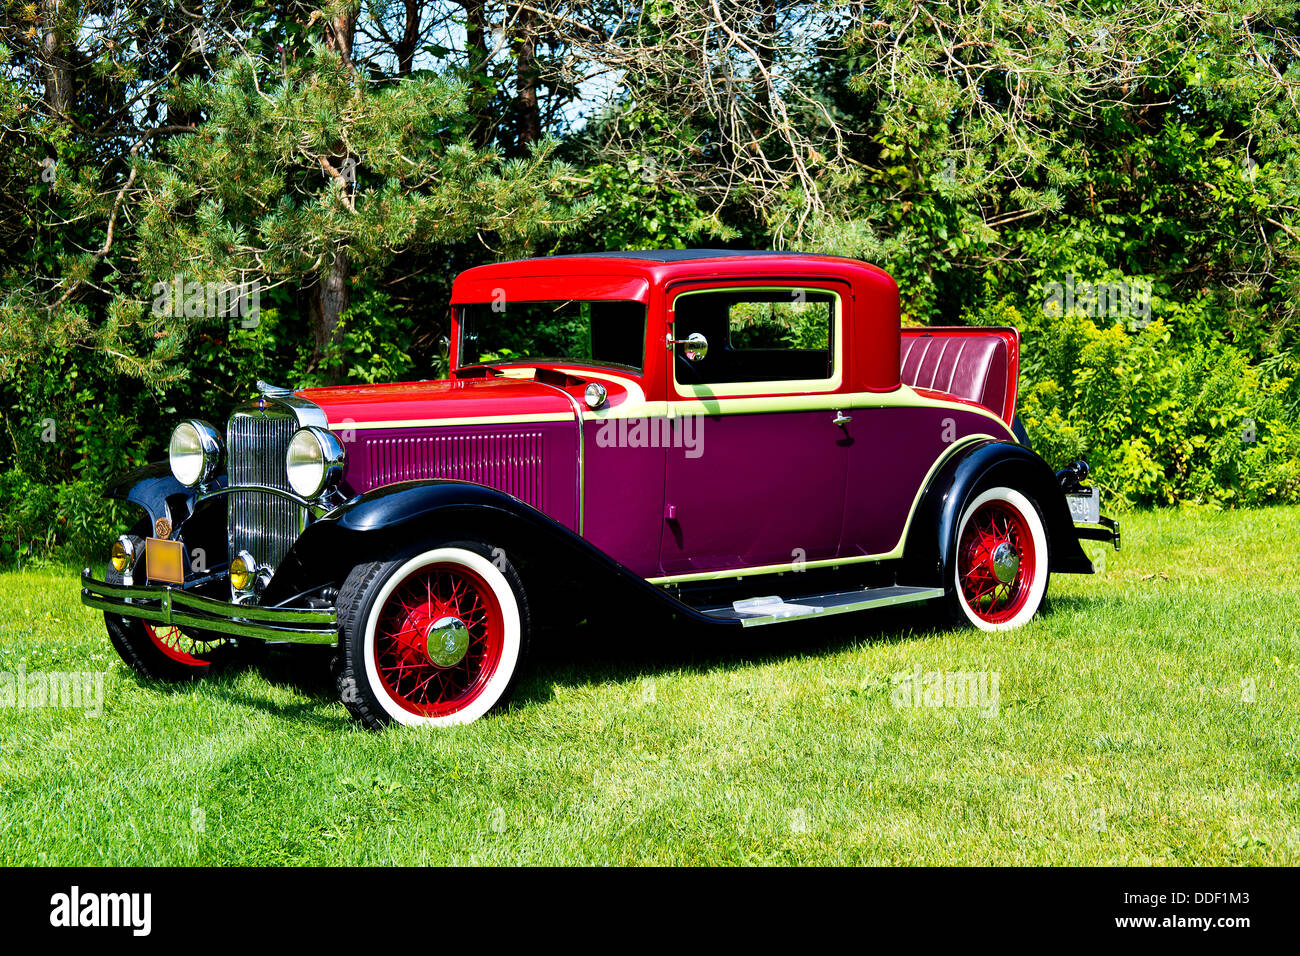 1931 dodge brothers rumble seat sport coupe stock image